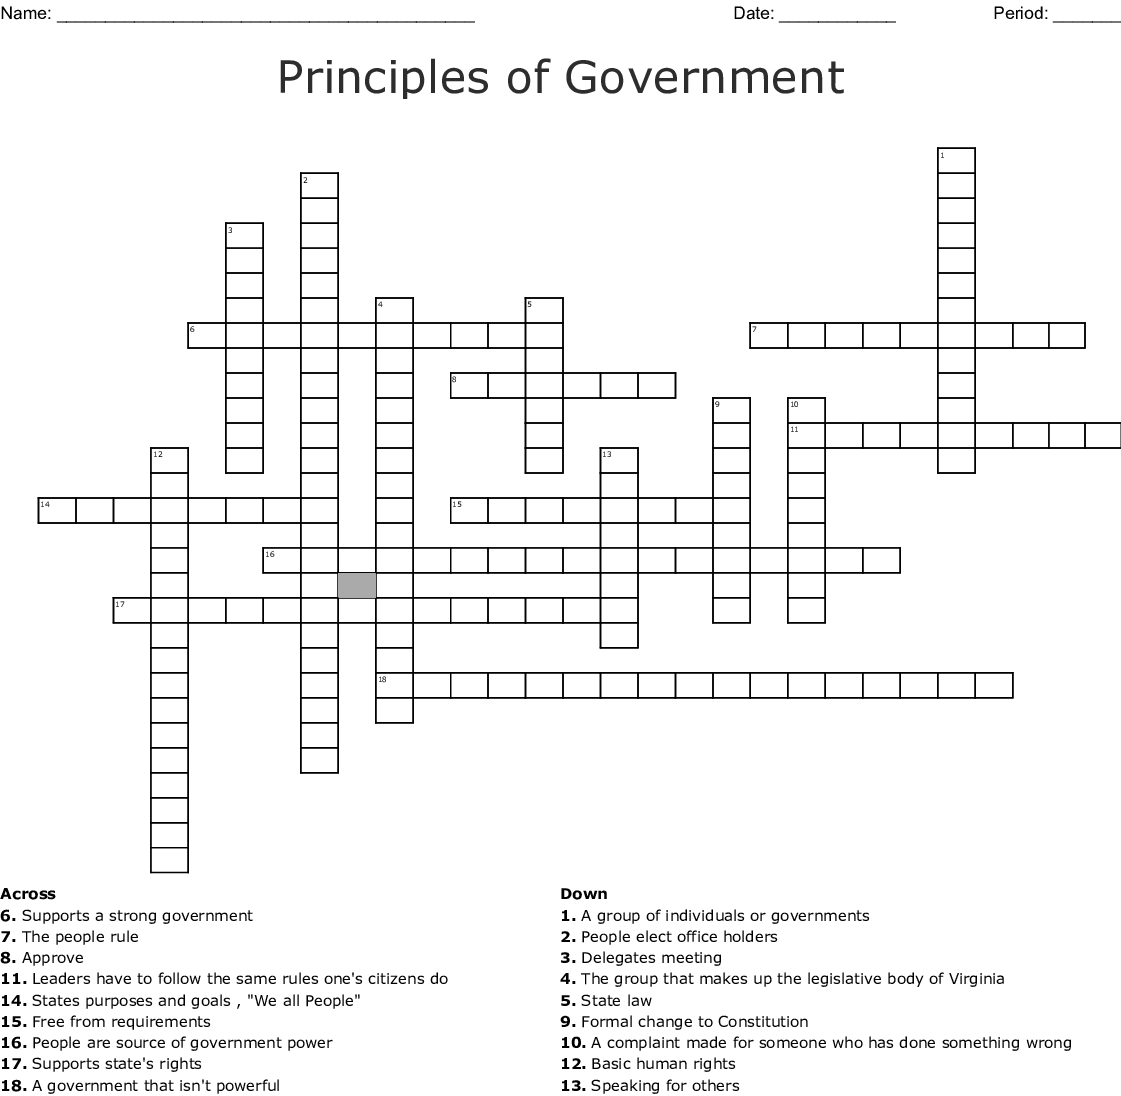 Principles Of Government Crossword